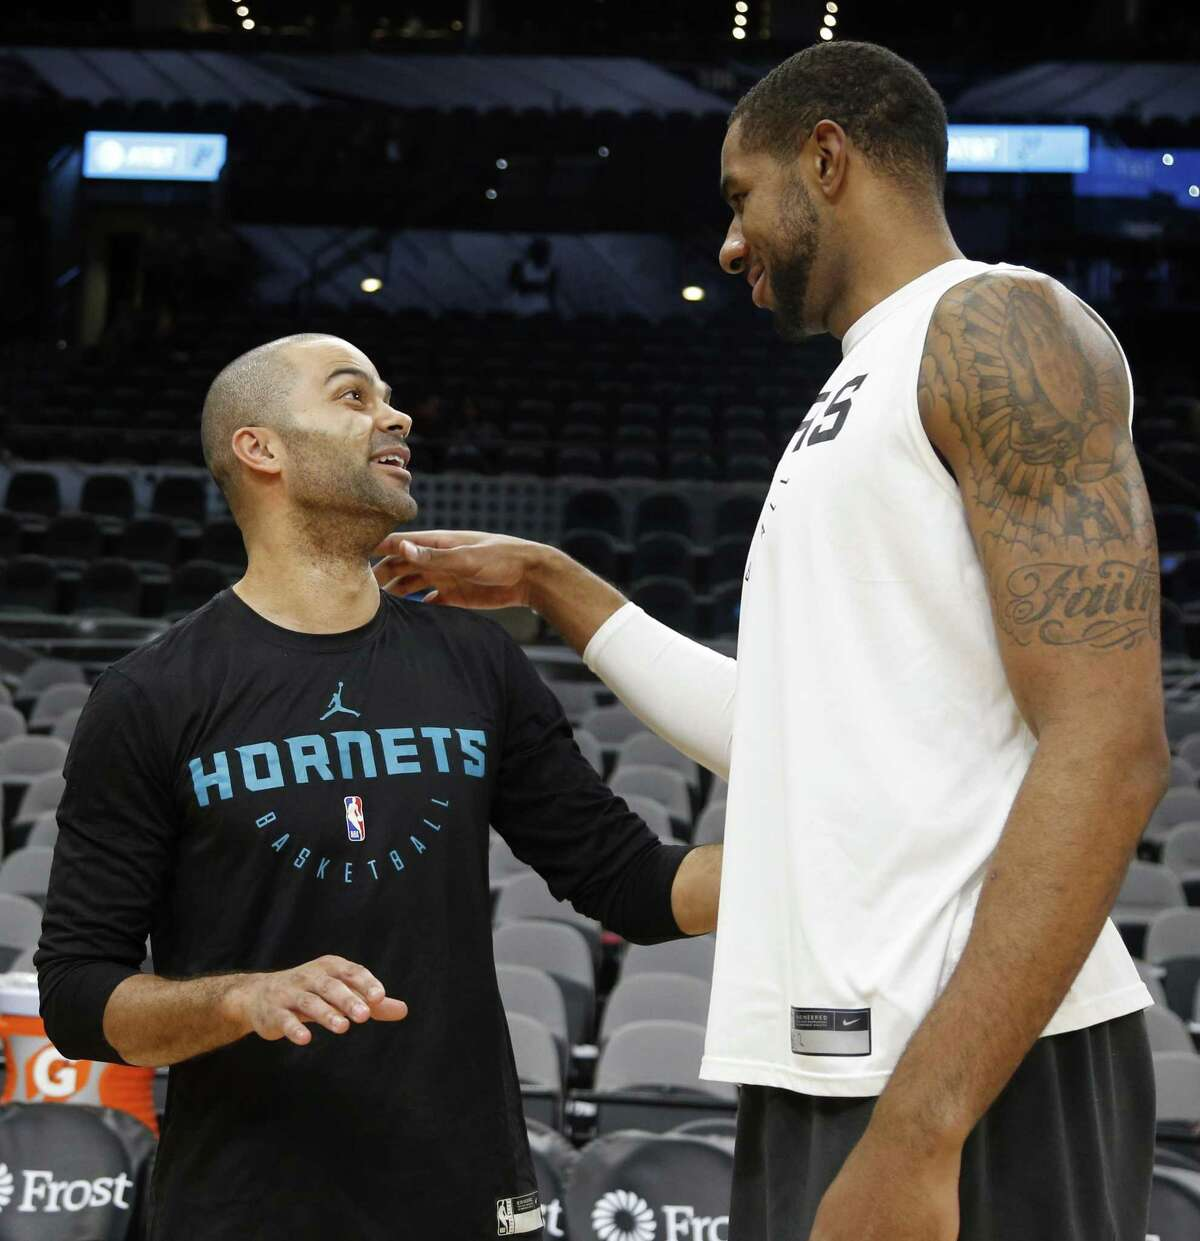 Tony Parker #9 of the Charlotte Hornets is greeted by LaMarcus Aldridge #12 of the San Antonio Spurs before the start of their game on Monday, January 14, 2019 at AT&T Center.